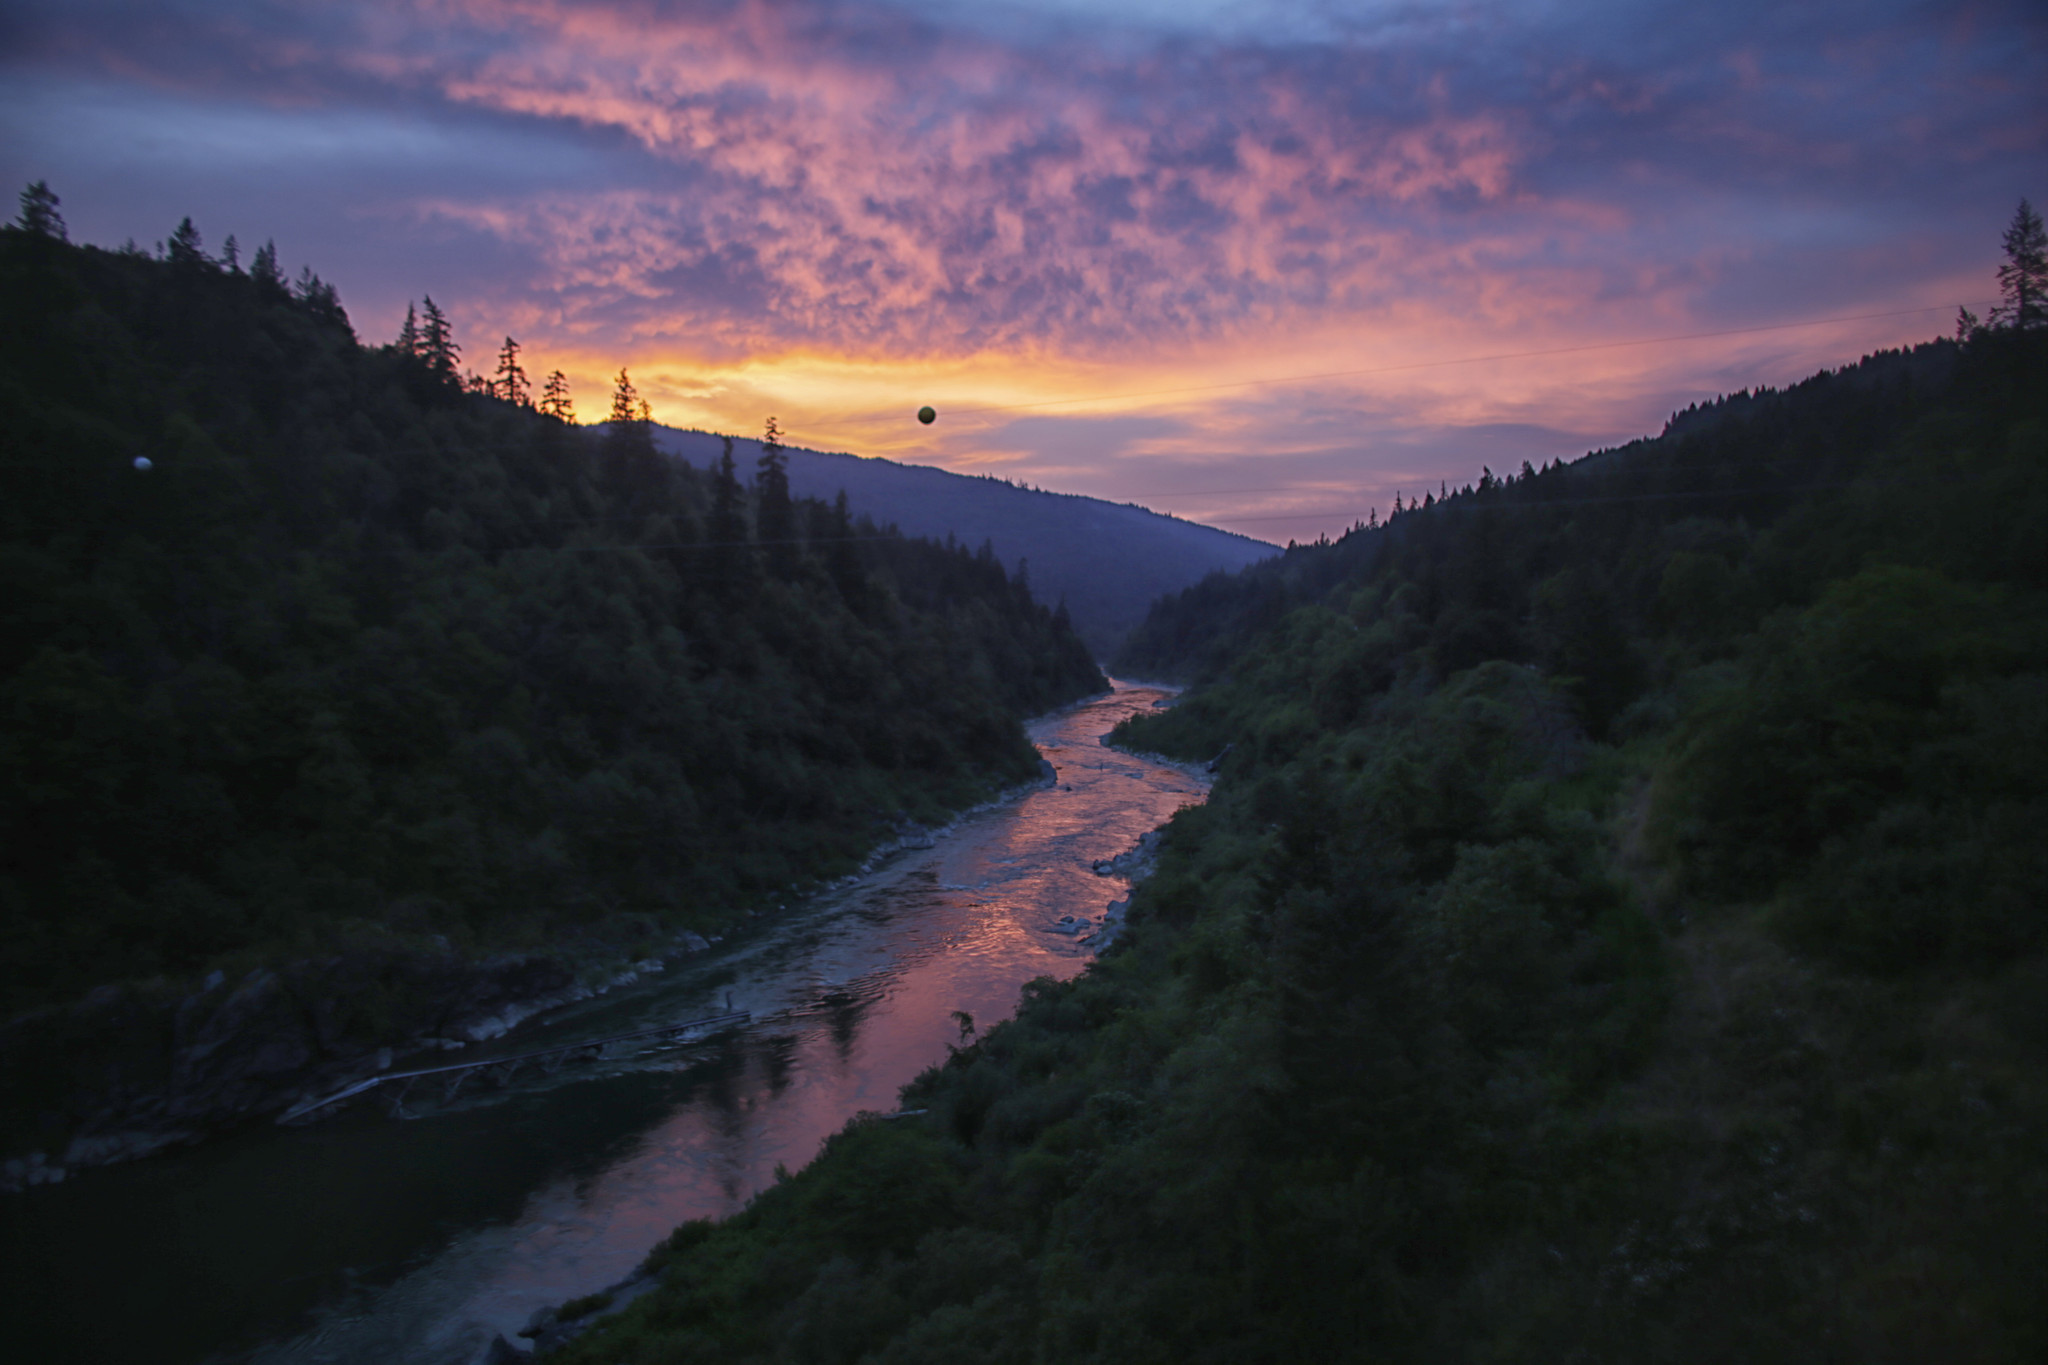 As the mighty Klamath River grew sick, poverty, addiction and lawlessness gripped the reservation.